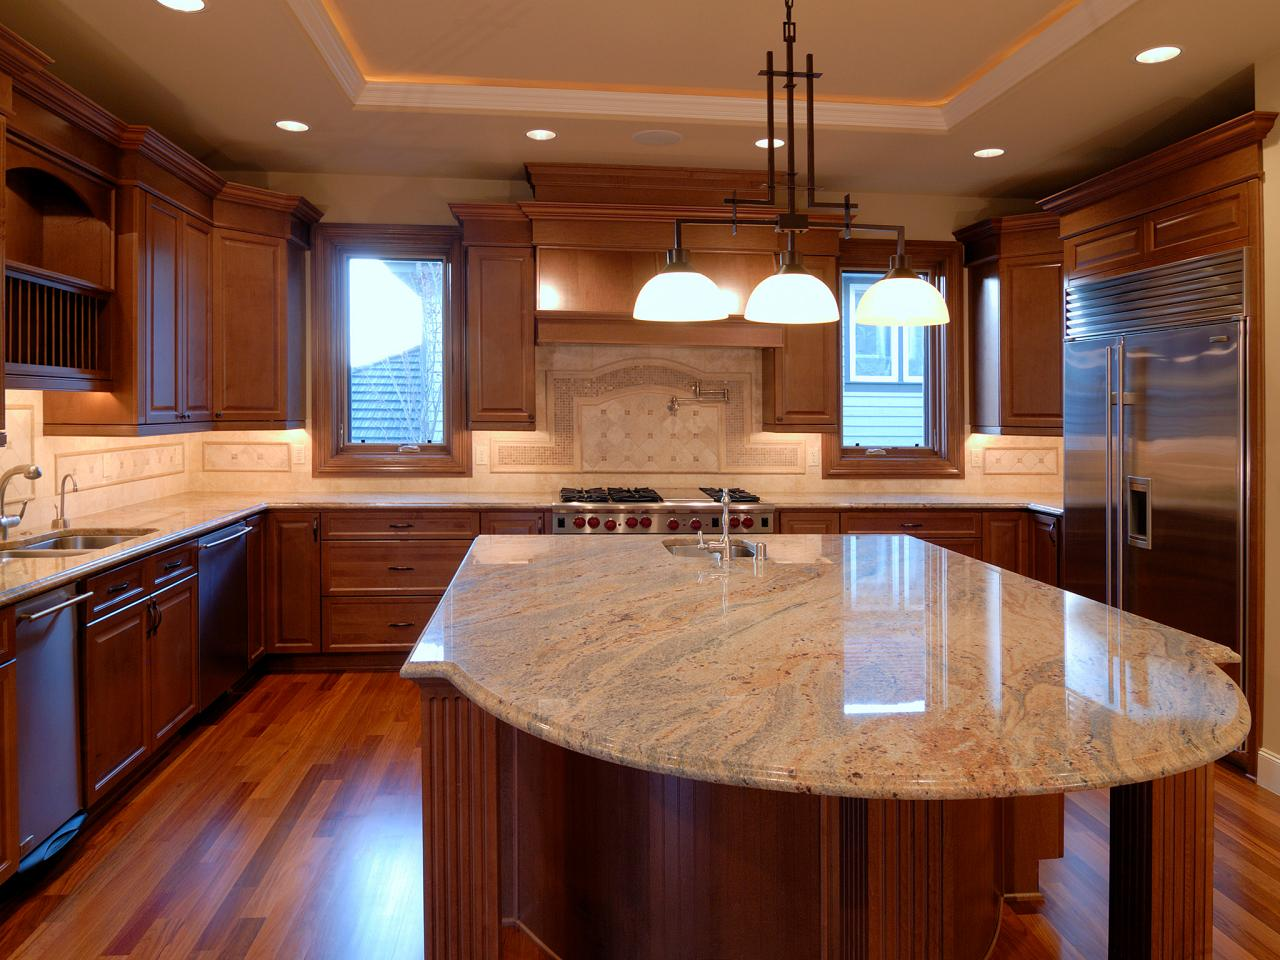 Modern kitchen islands hgtv for Modern house kitchen